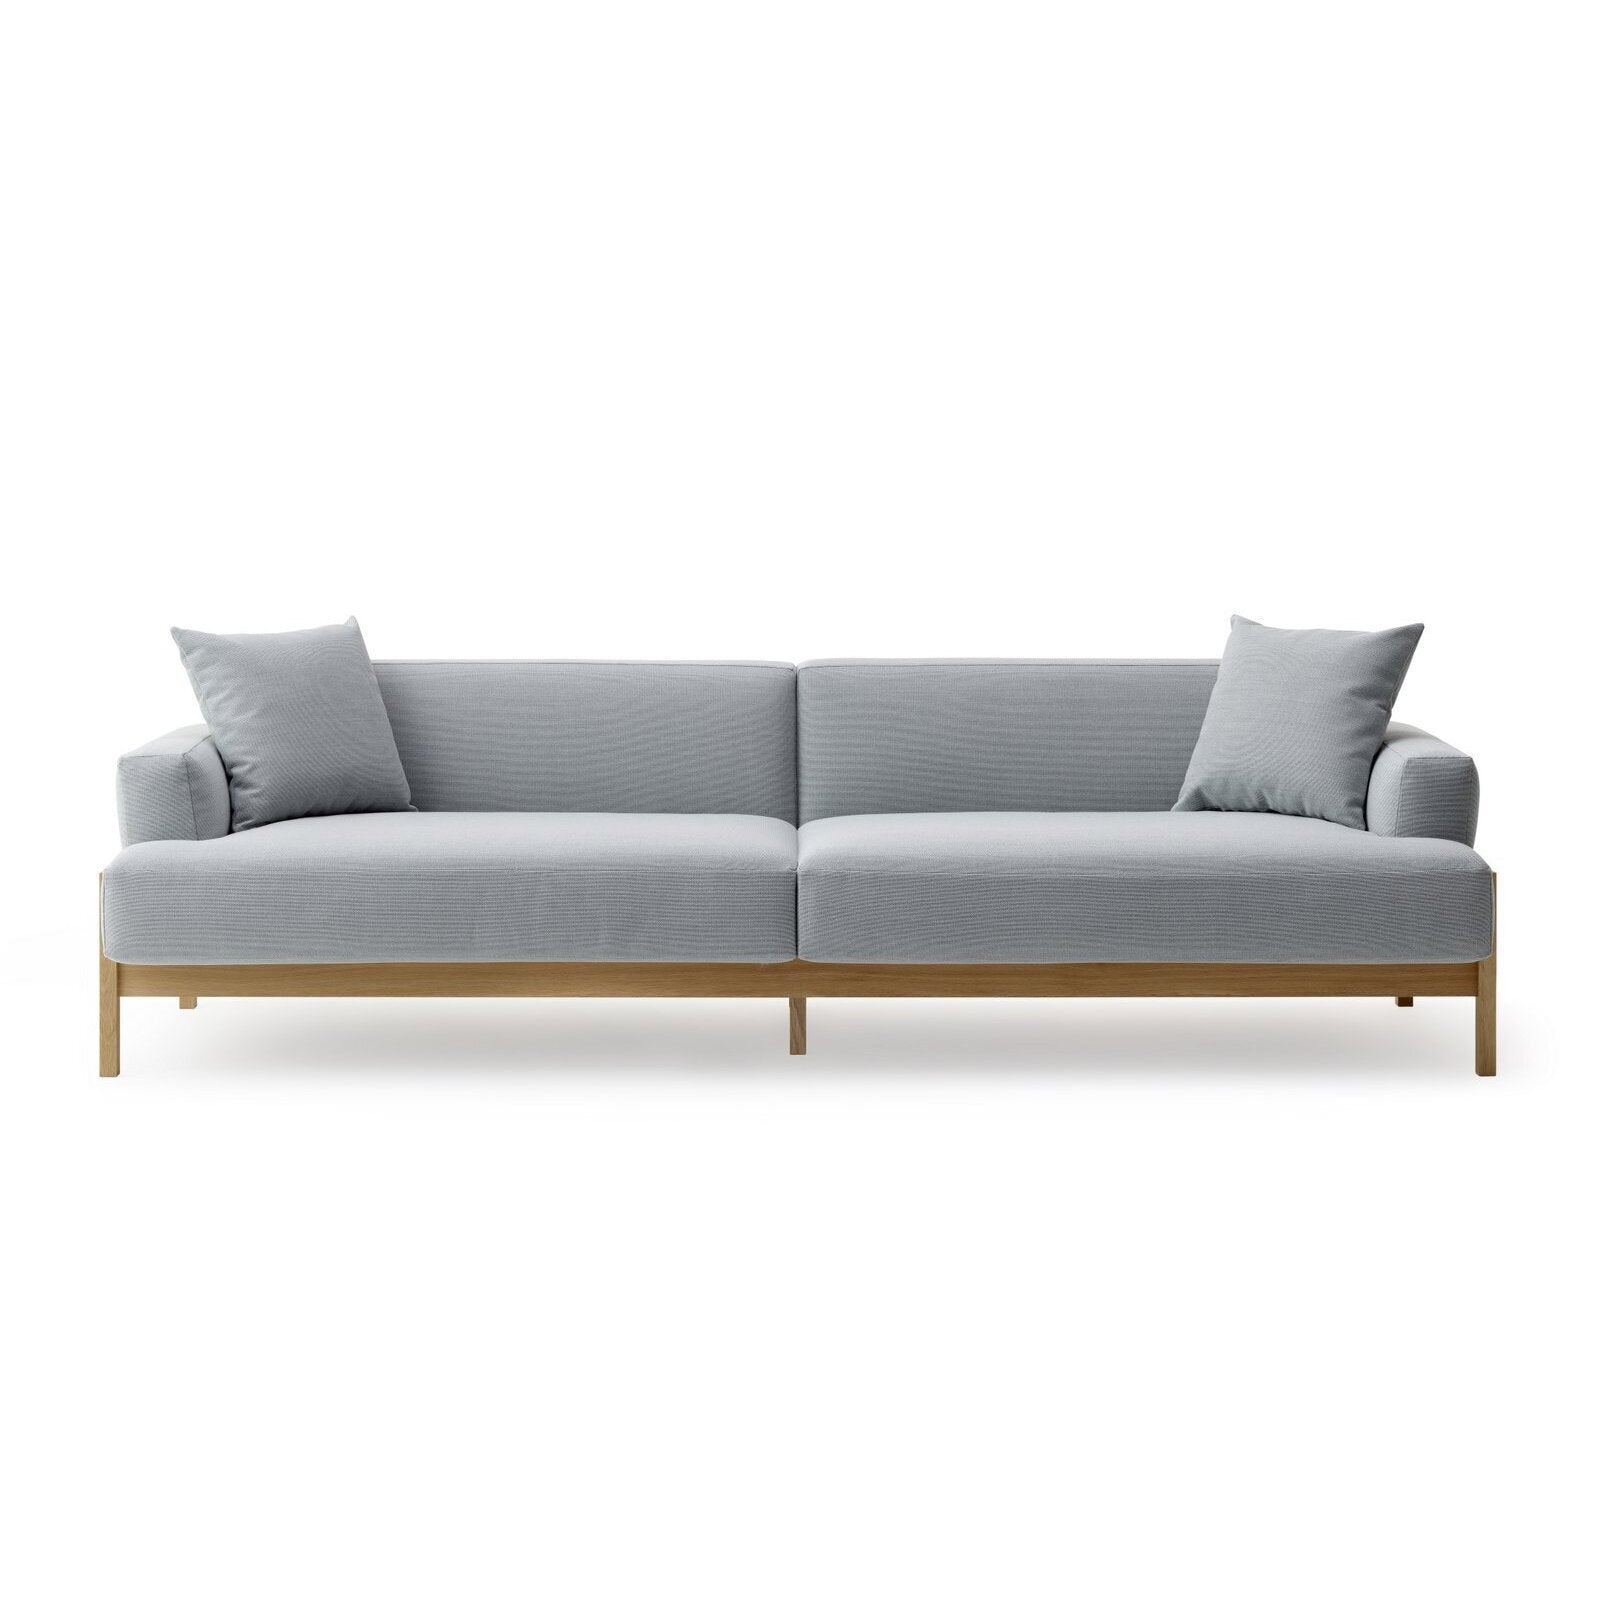 KCS Sofa A-S01 2.5 Seater